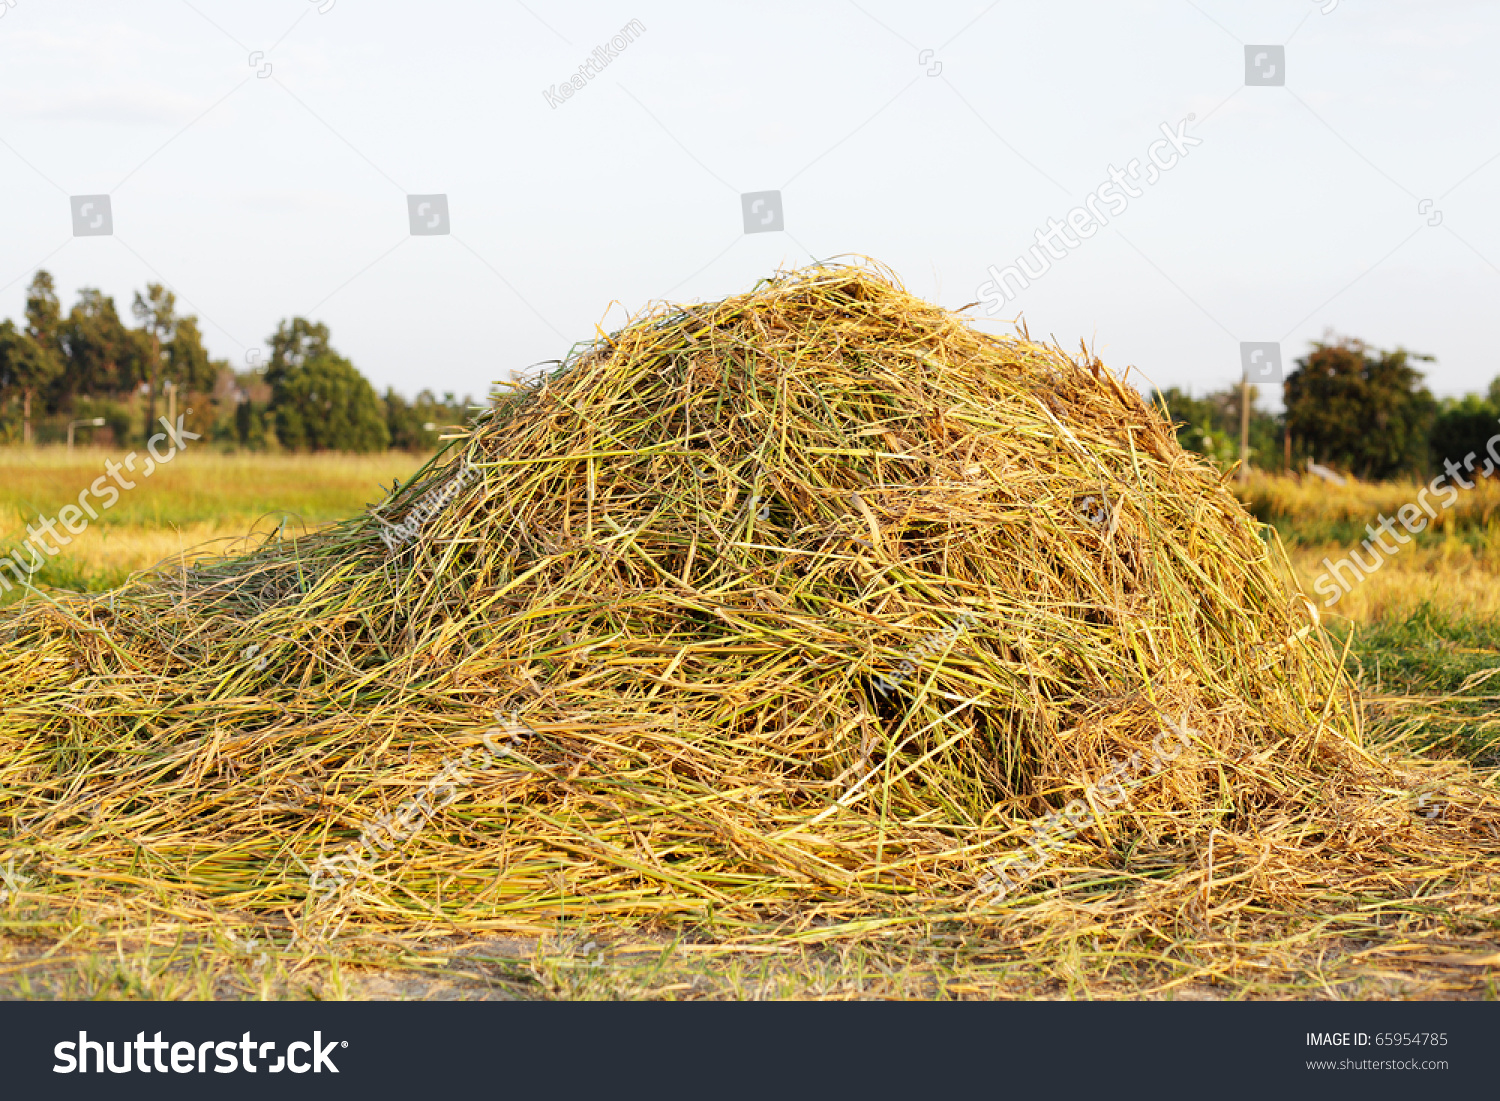 pile of rice hay stock photo 65954785 shutterstock. Black Bedroom Furniture Sets. Home Design Ideas